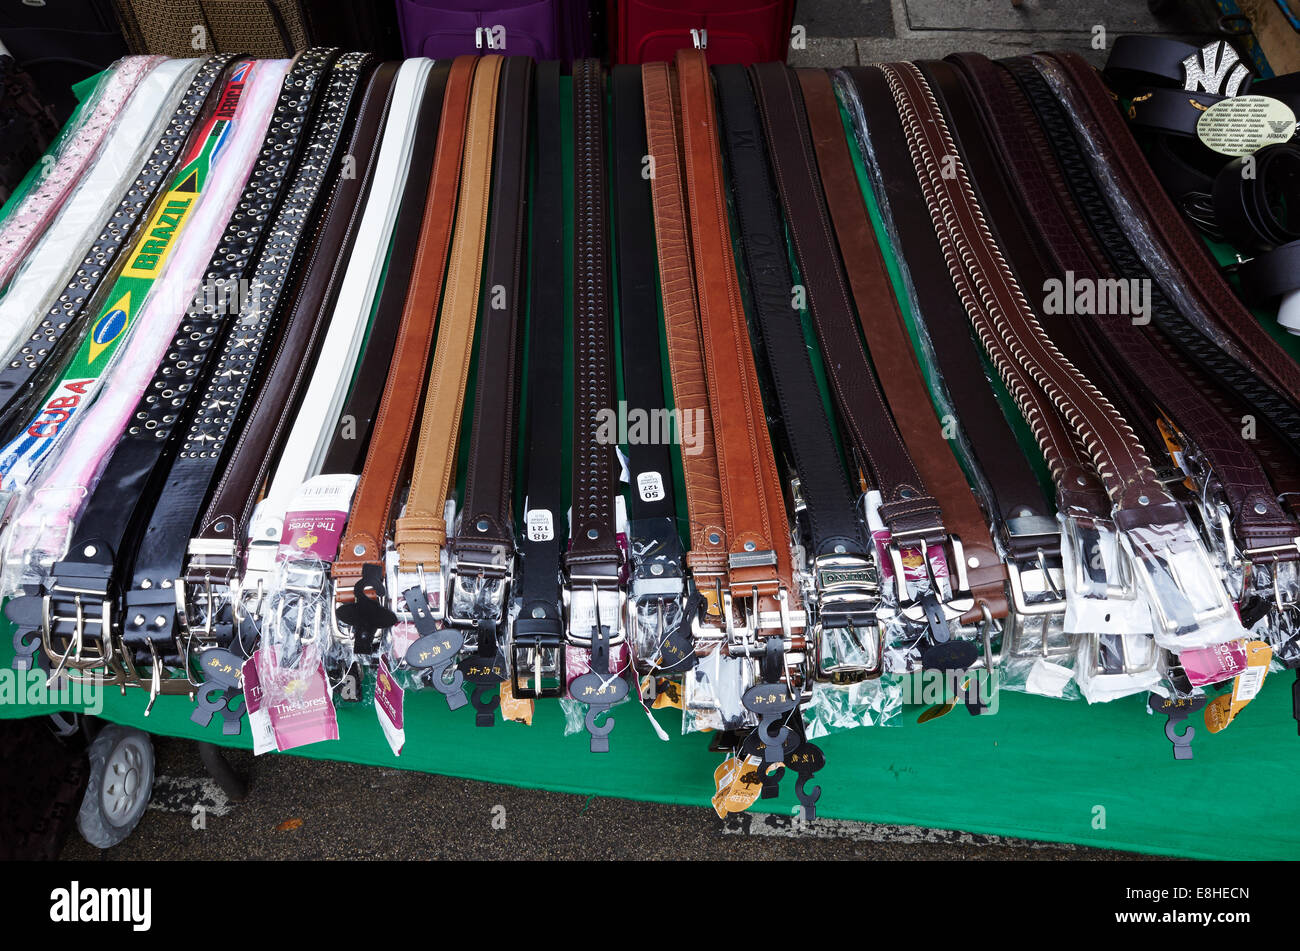 Leather belts for sale in East Street Market, London, UK - Stock Image